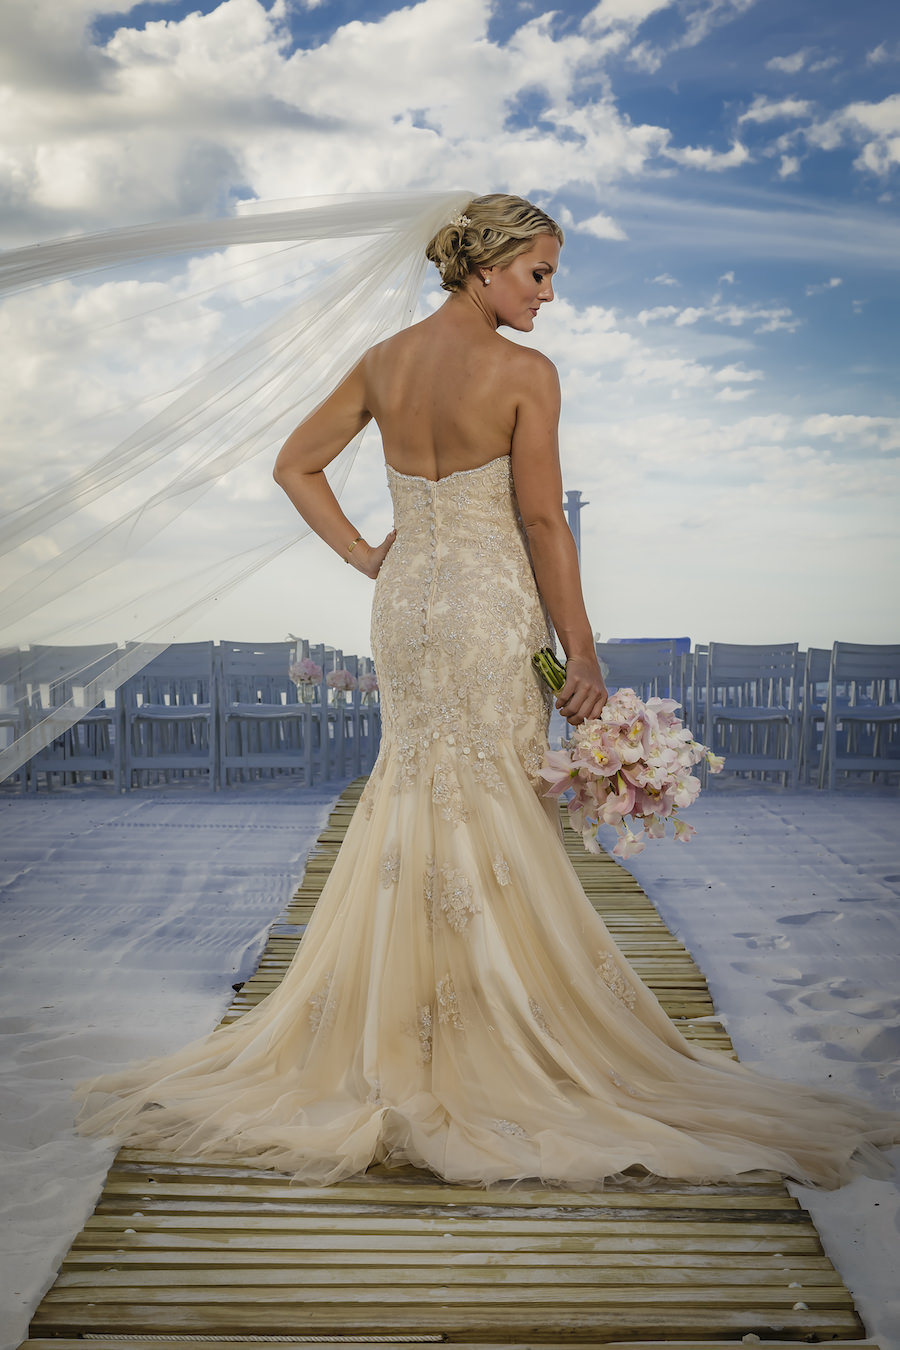 Outdoor, Clearwater Beach Bride Wedding Portrait with Strapless Beaded Stella York Wedding Dress and Long Veil